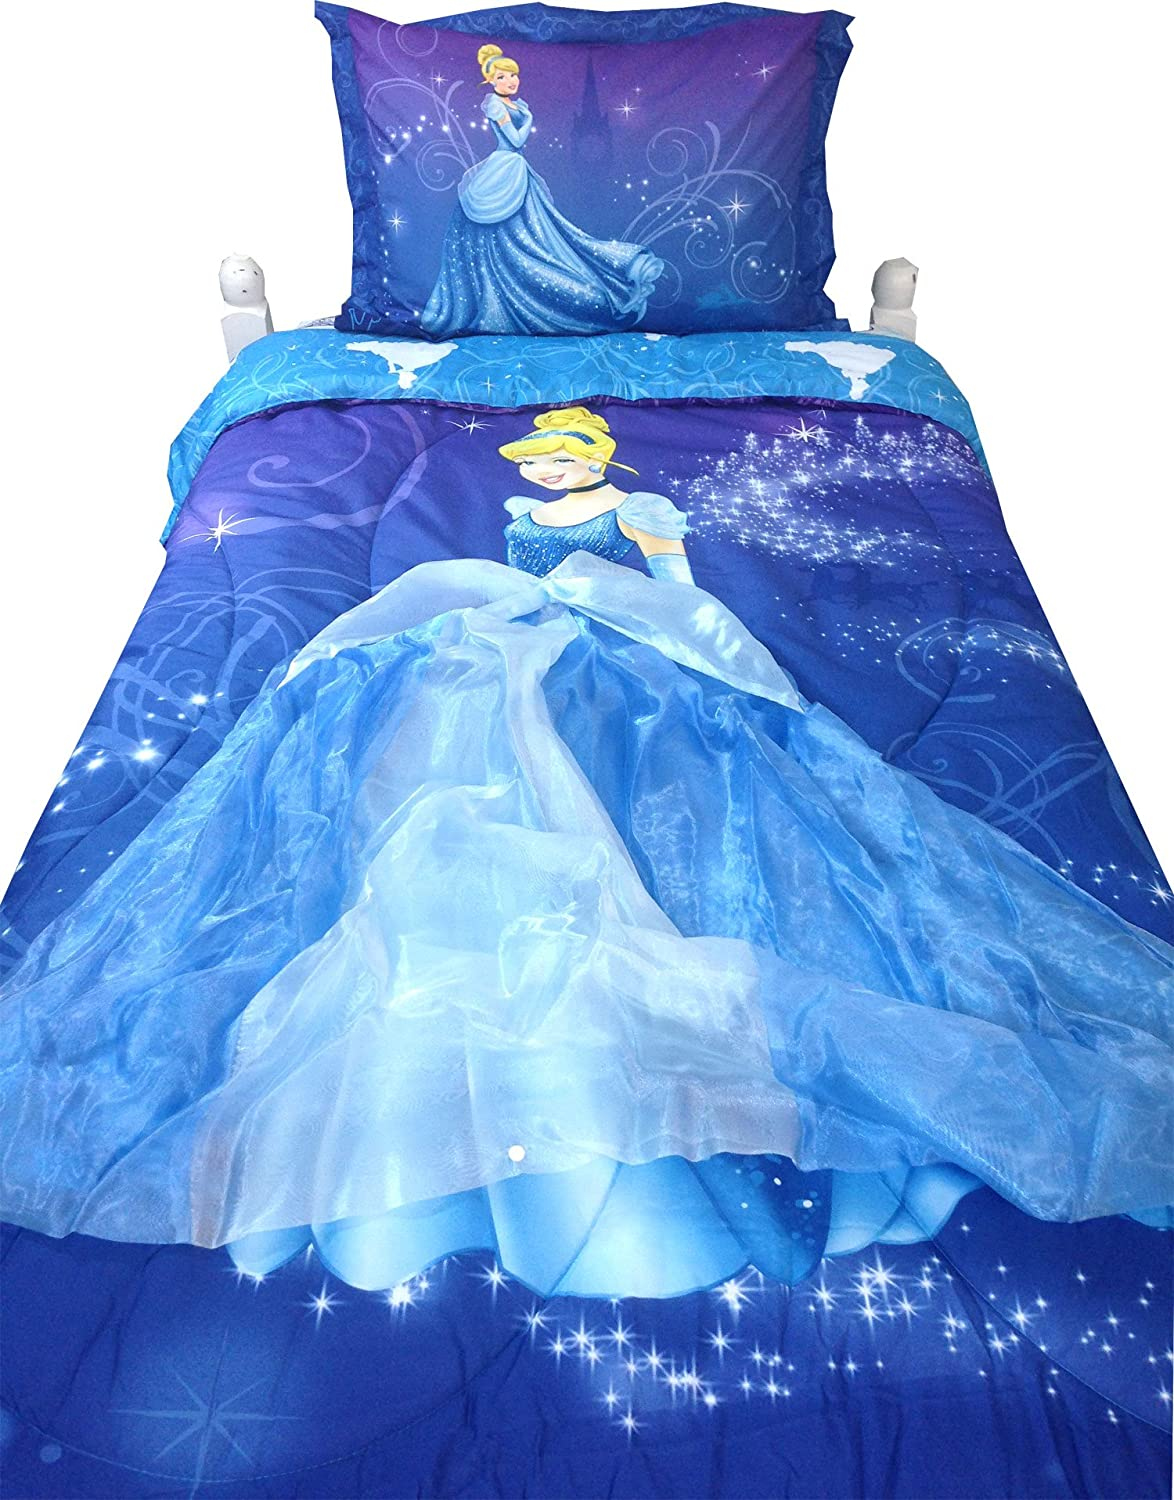 amazon com disney cinderella comforter with wearable princess amazon com disney cinderella comforter with wearable princess skirt home kitchen